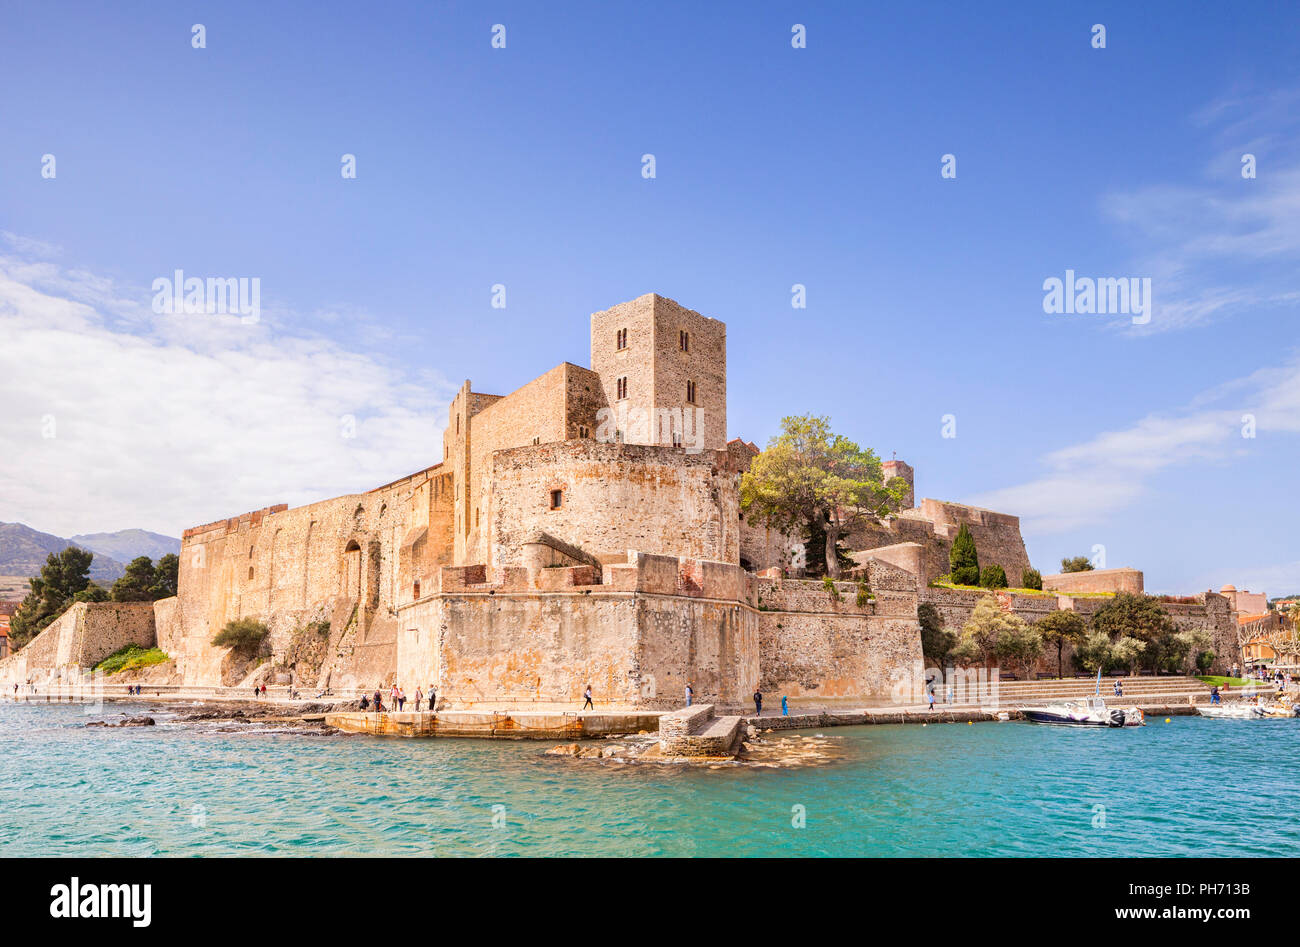 Royal Chateau, Collioure, Languedoc-Roussillon, Pyrenees-Orientales, France. - Stock Image